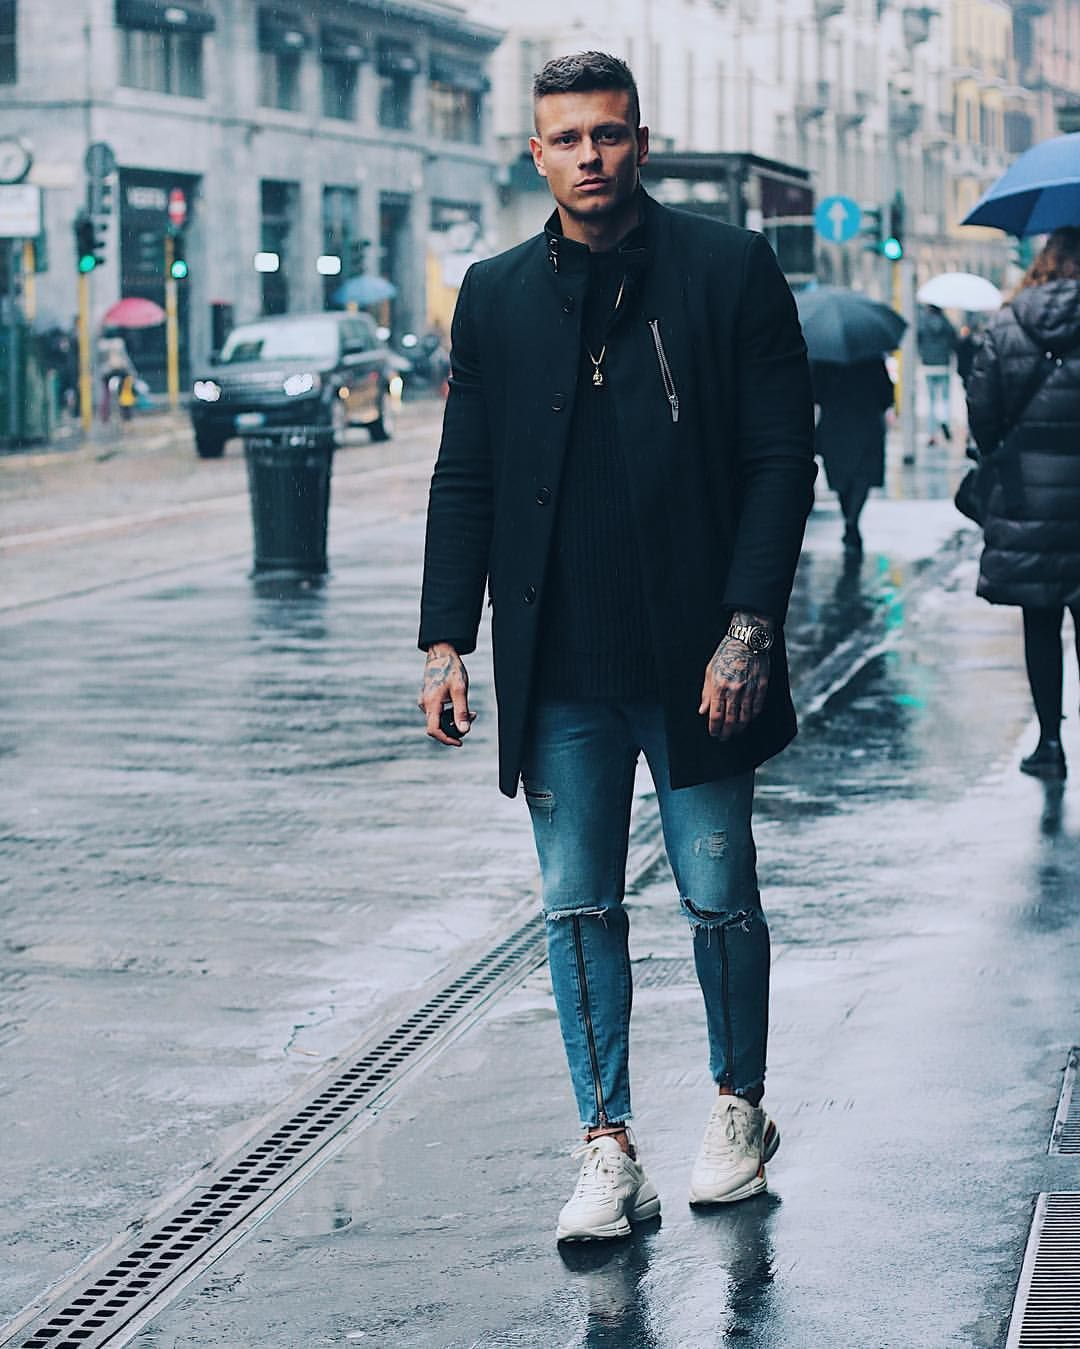 Pin By Joao Pedro Ghedine Ferreira On Best Men Outfits In 2019